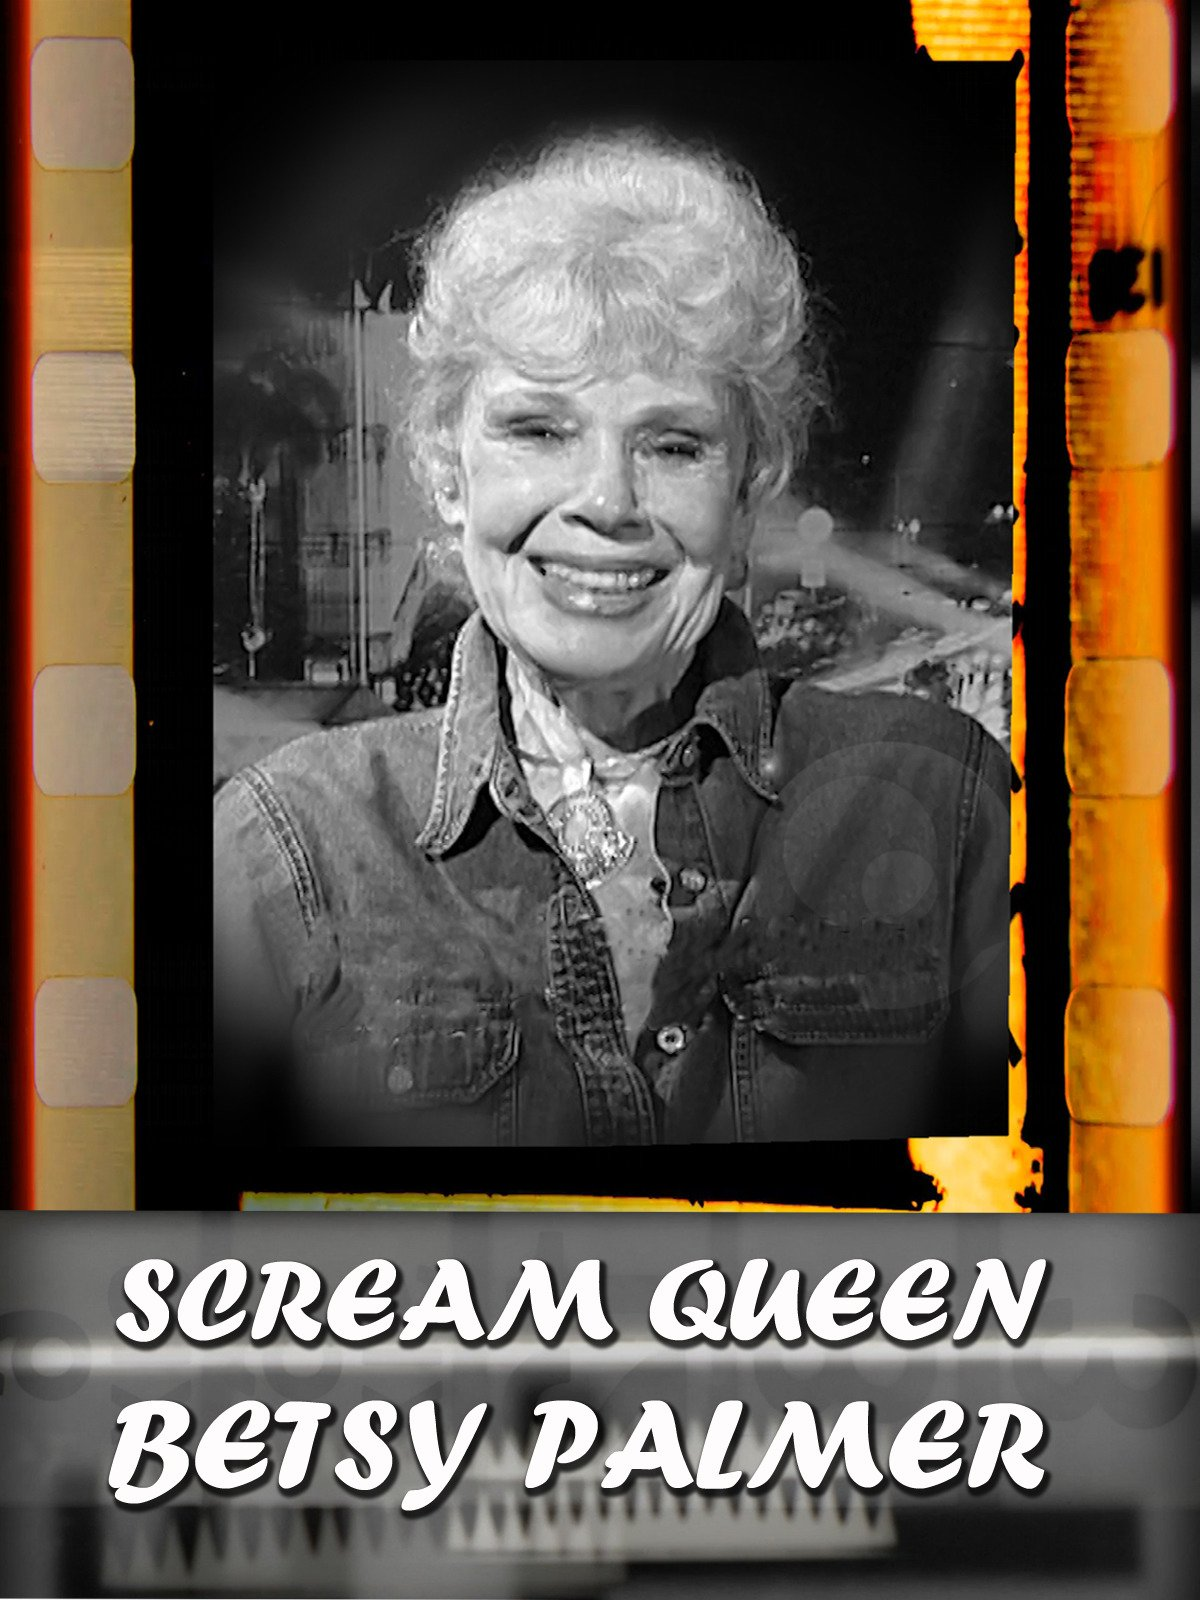 Scream Queen Betsy Palmer